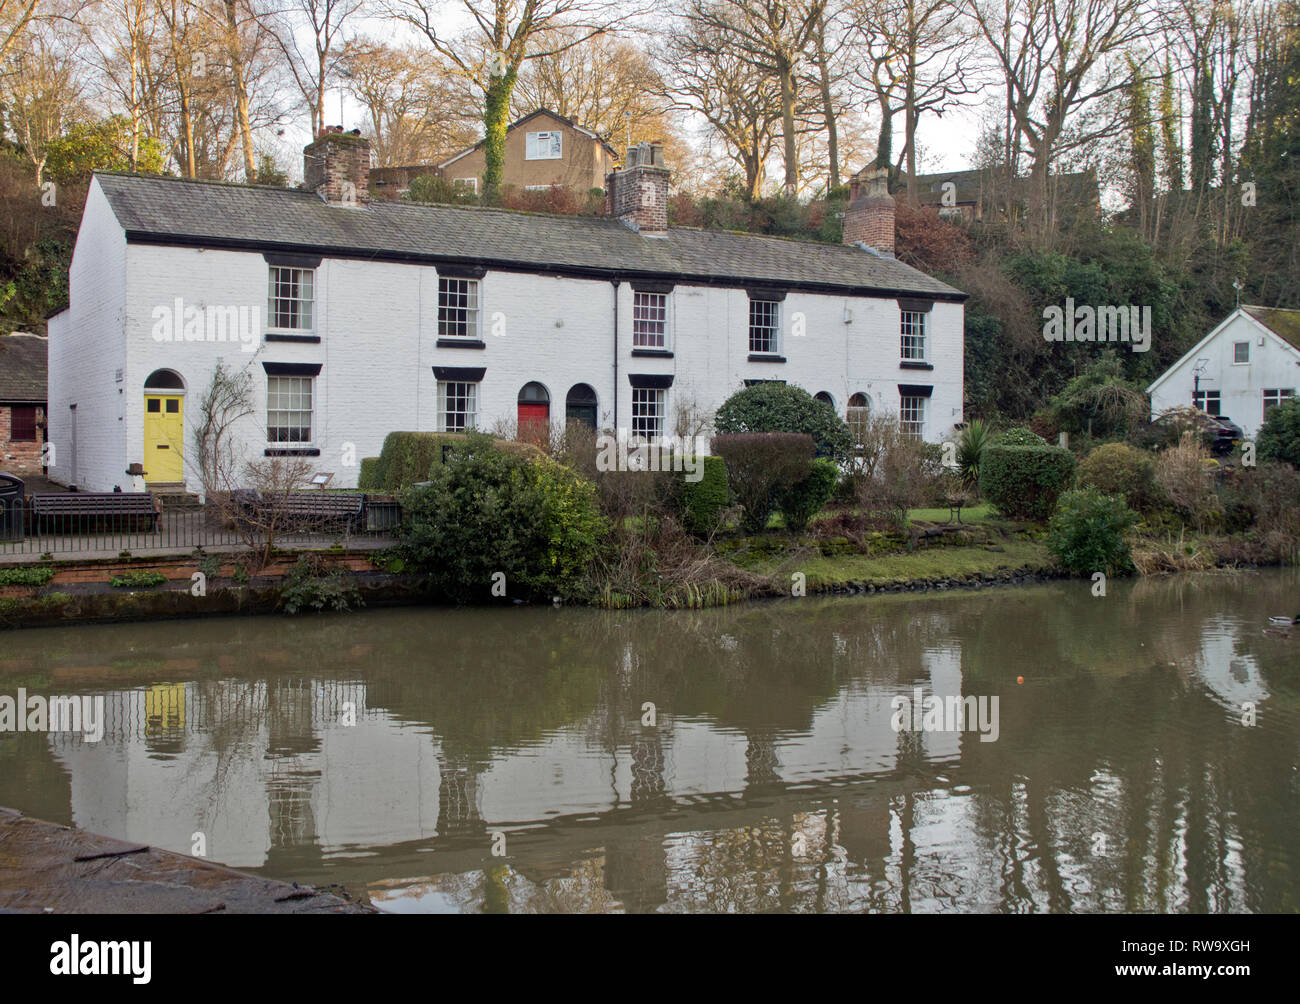 The Grove, Lymm Cheshire - Stock Image